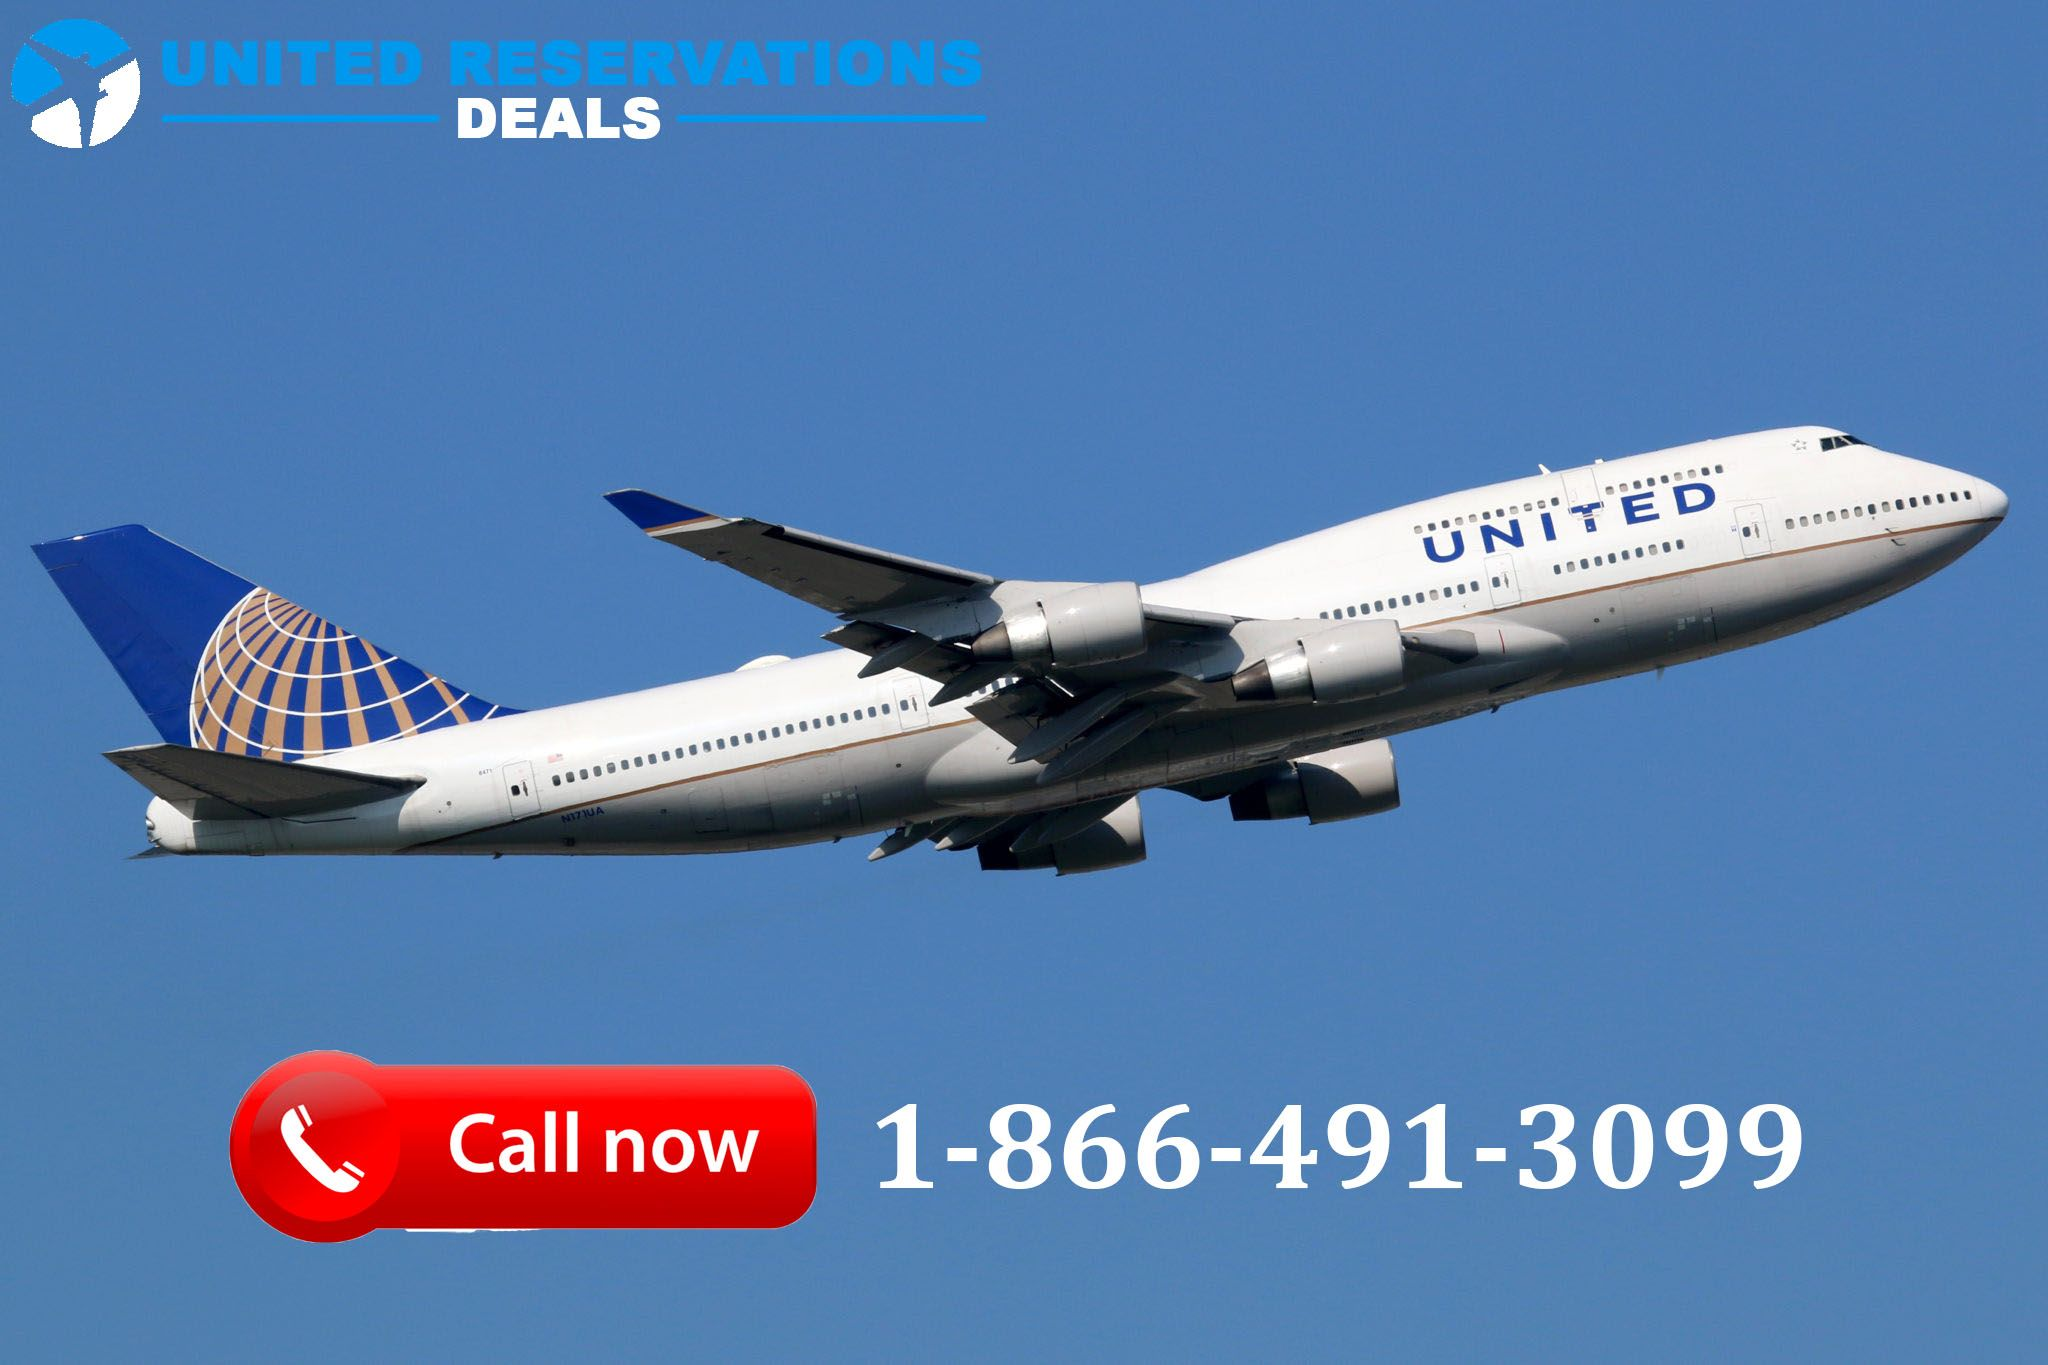 Ways To Apply For Lost And Found Options With United Airlines Flights United Airlines Airline Flights The Unit